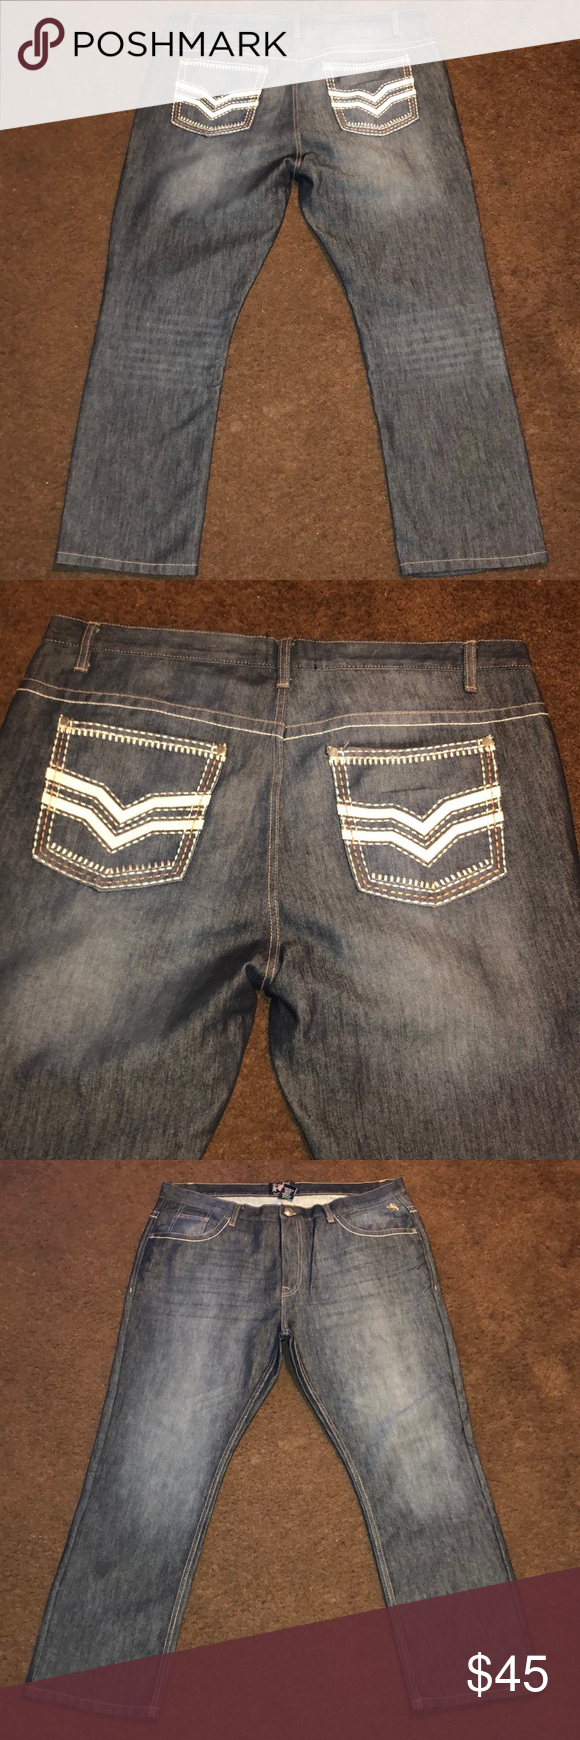 Lions Crest By English Laundry Jeans With Images Clothes